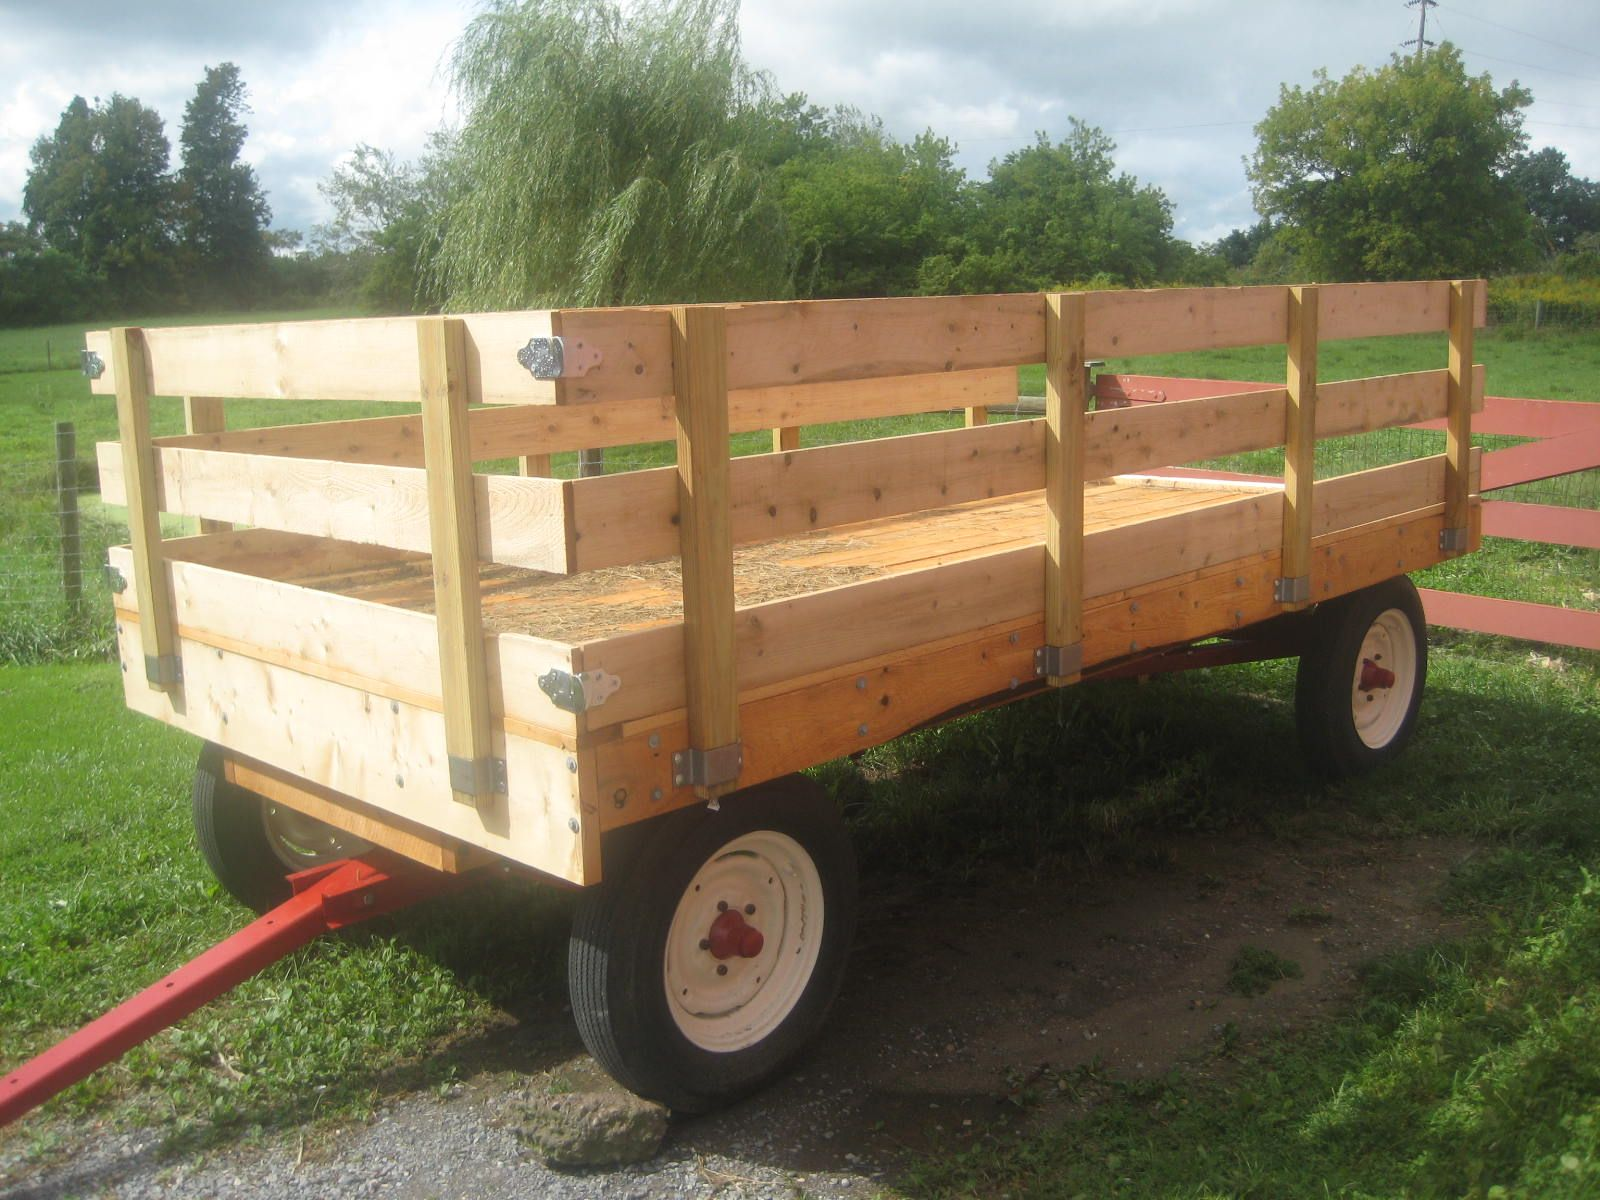 farm hay wagons for sale | Restoring a 60 year old Hay Wagon ...